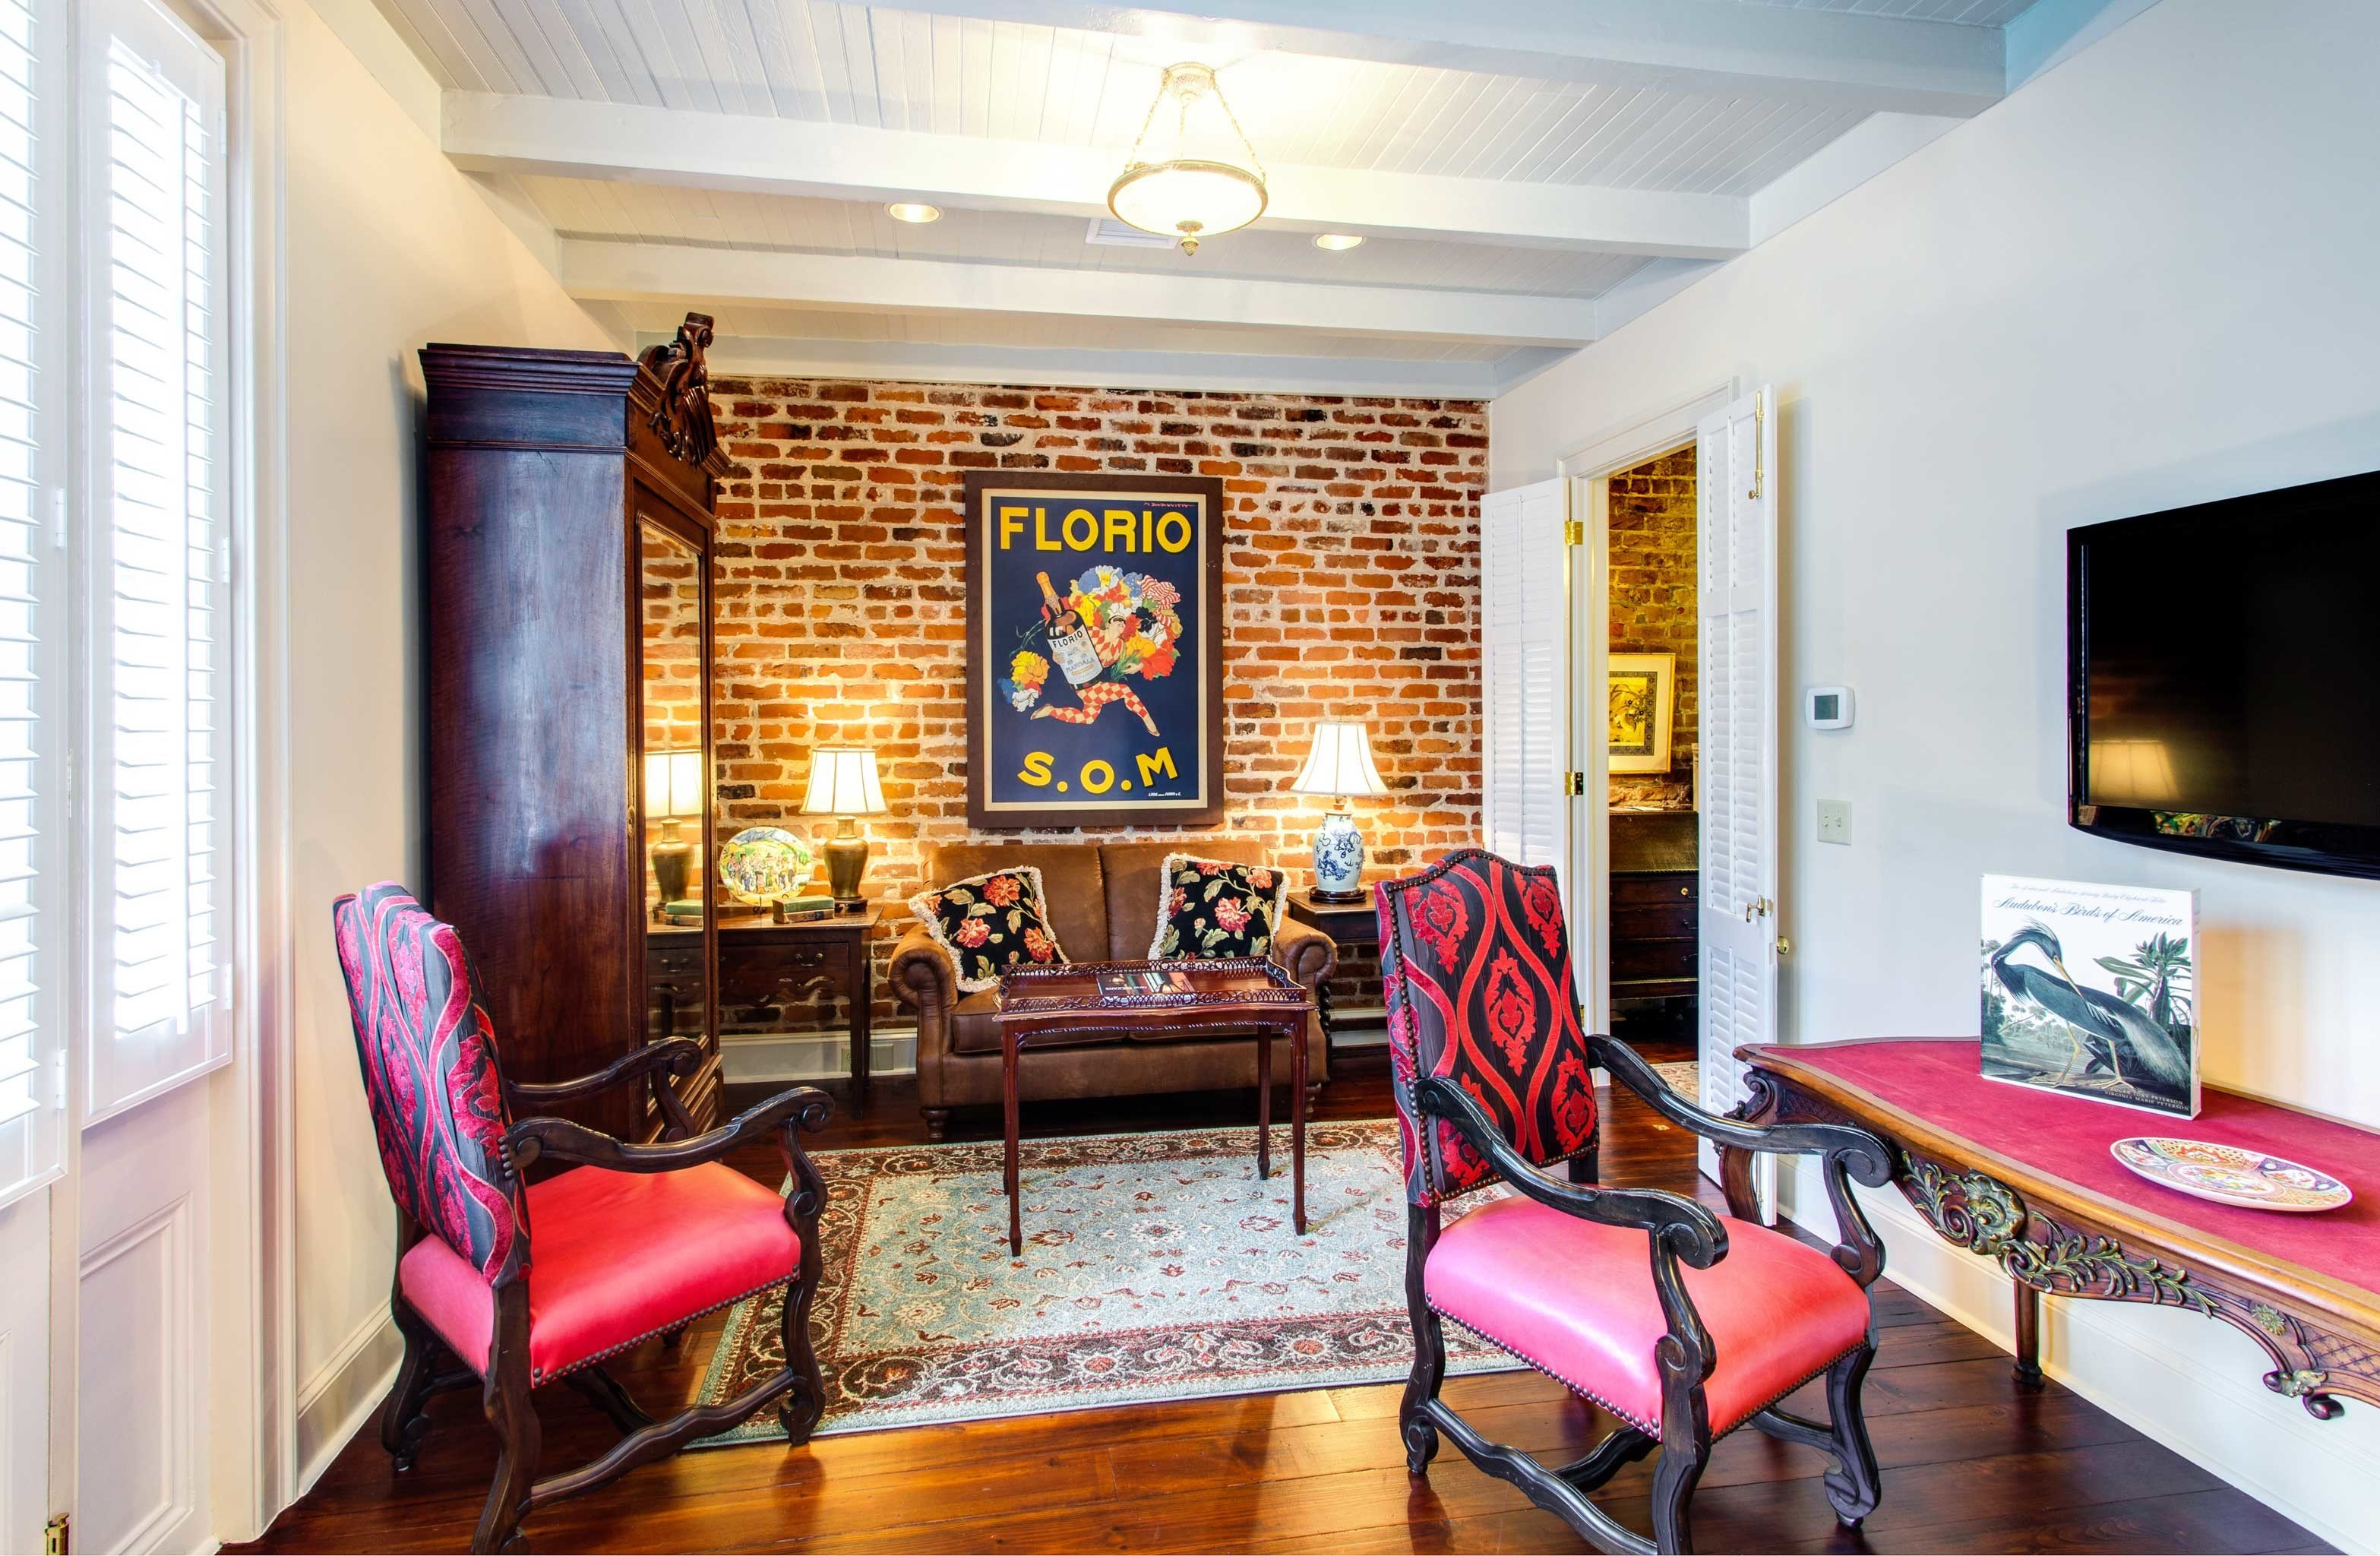 B&B Cultural Drink Eat Entertainment Nightlife chair living room property home recreation room hardwood cottage Villa Suite condominium mansion leather